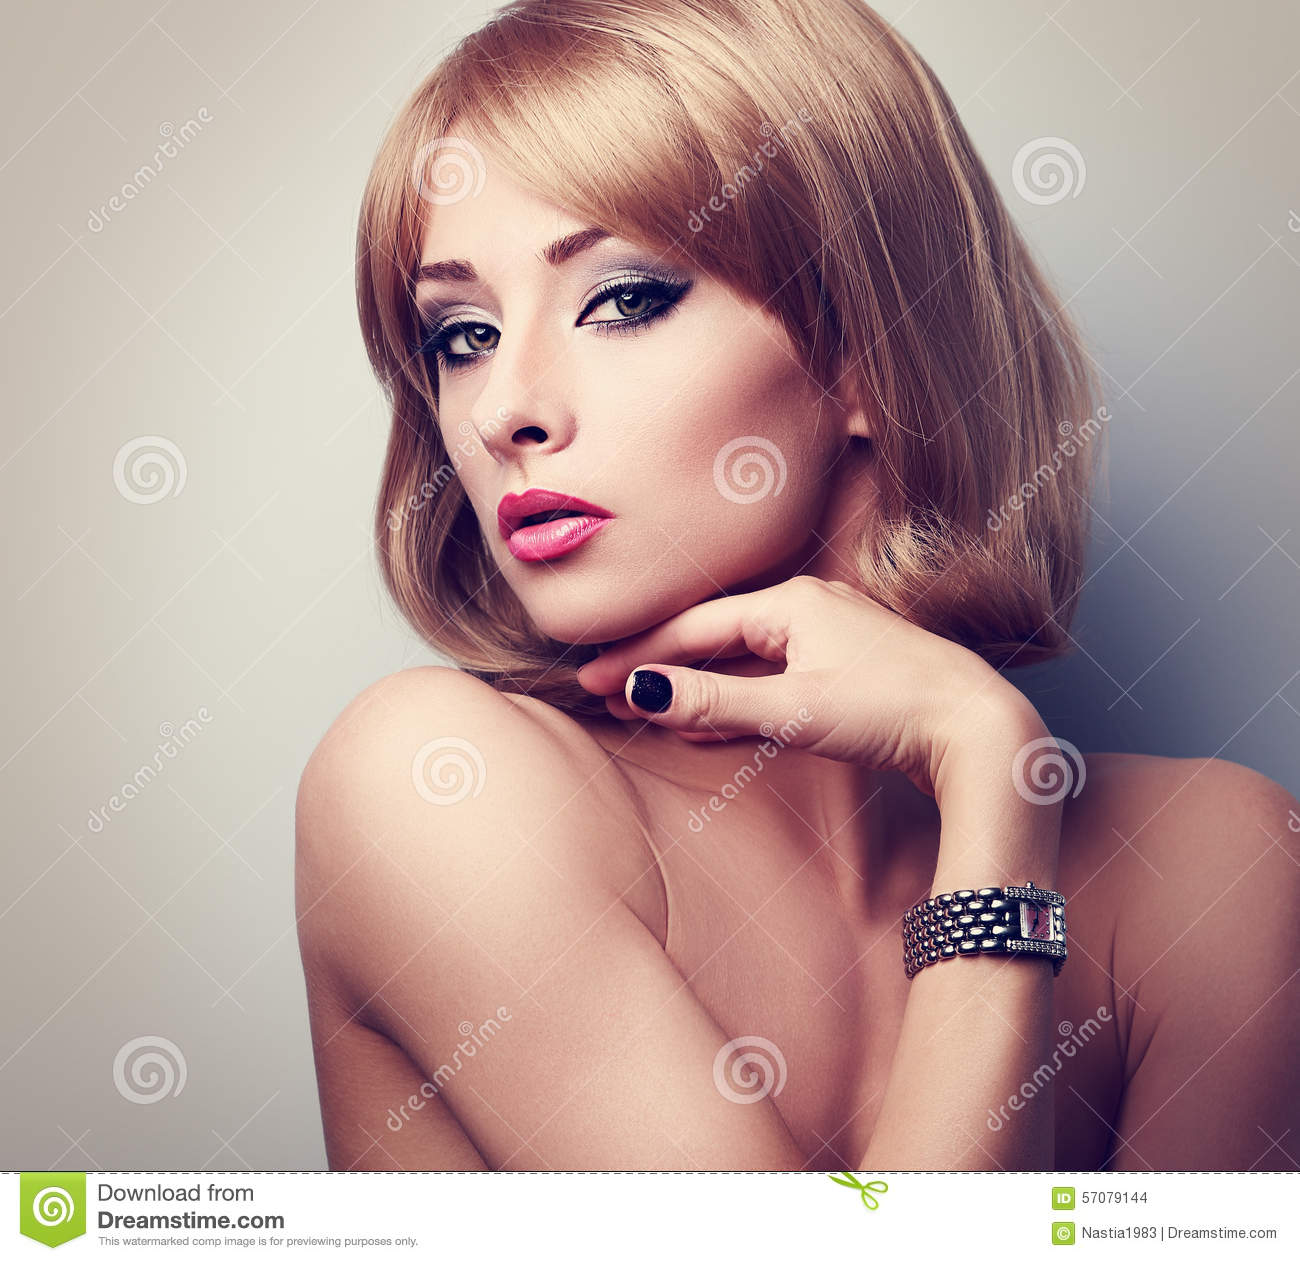 Beautiful Blonde Makeup Woman Posing In Fashion Watches On